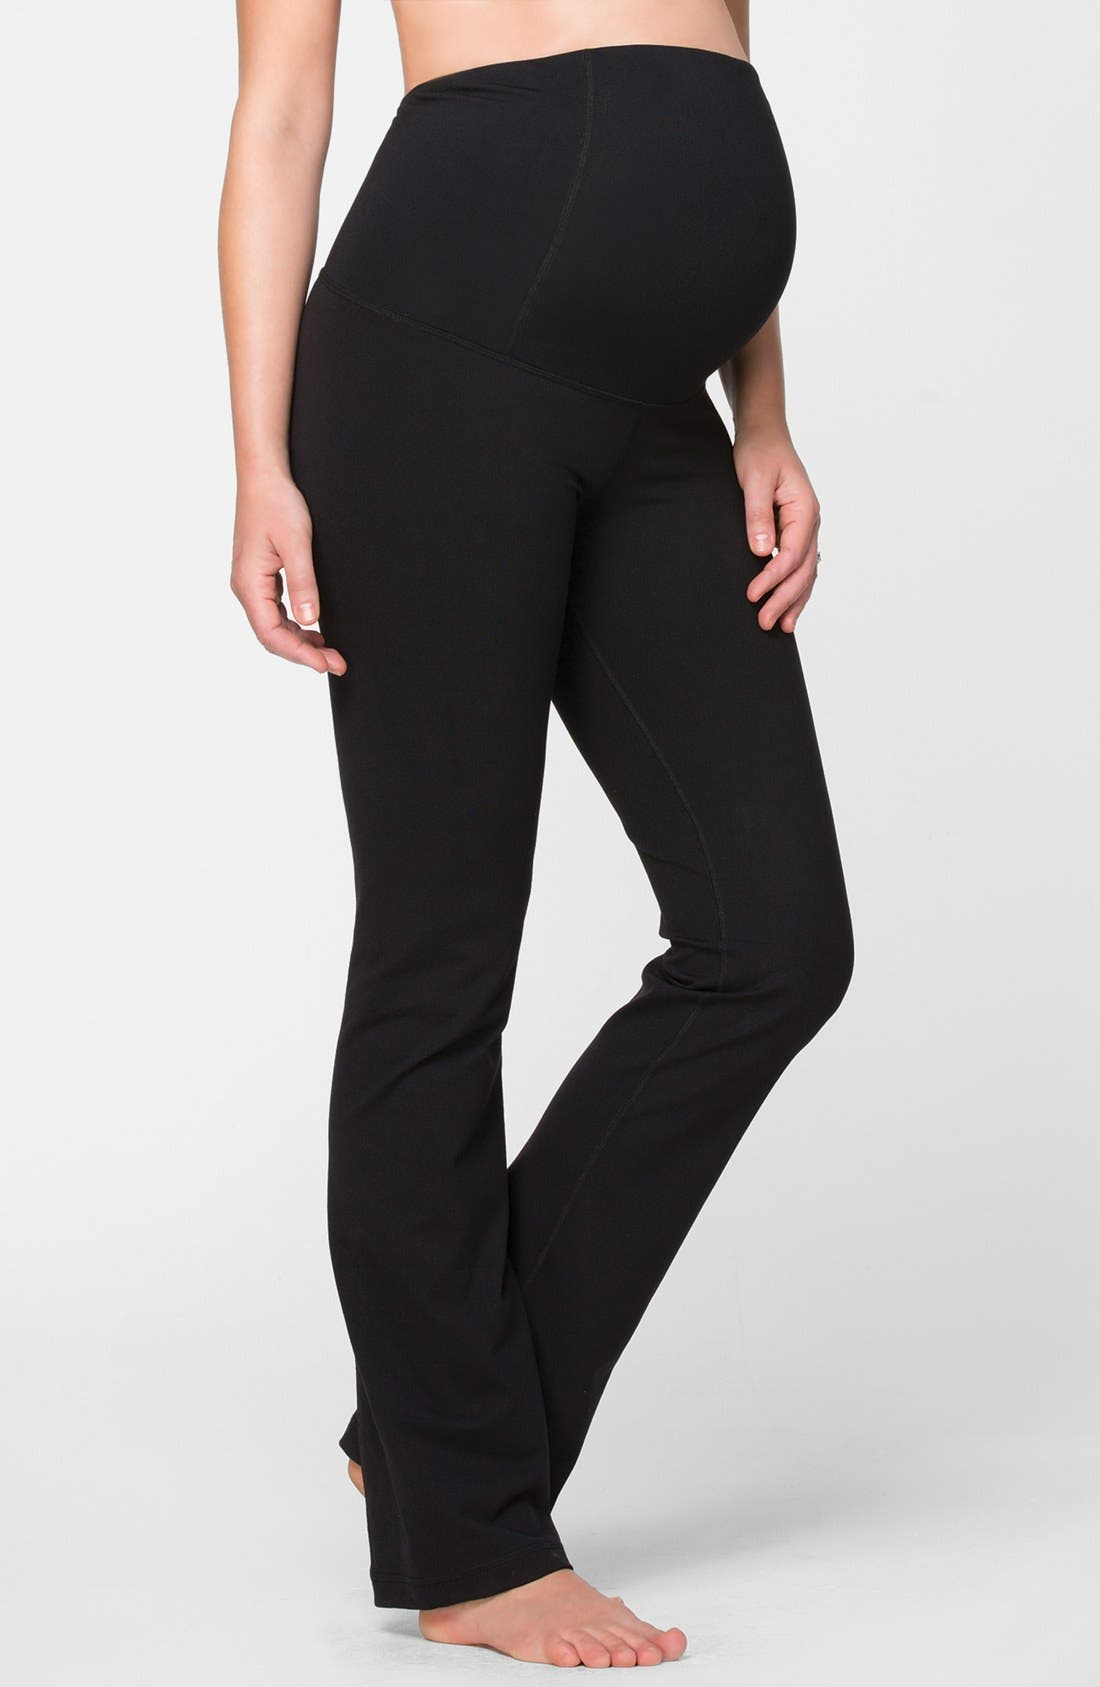 Active Maternity Pants with Crossover Panel,                         Main,                         color, 001